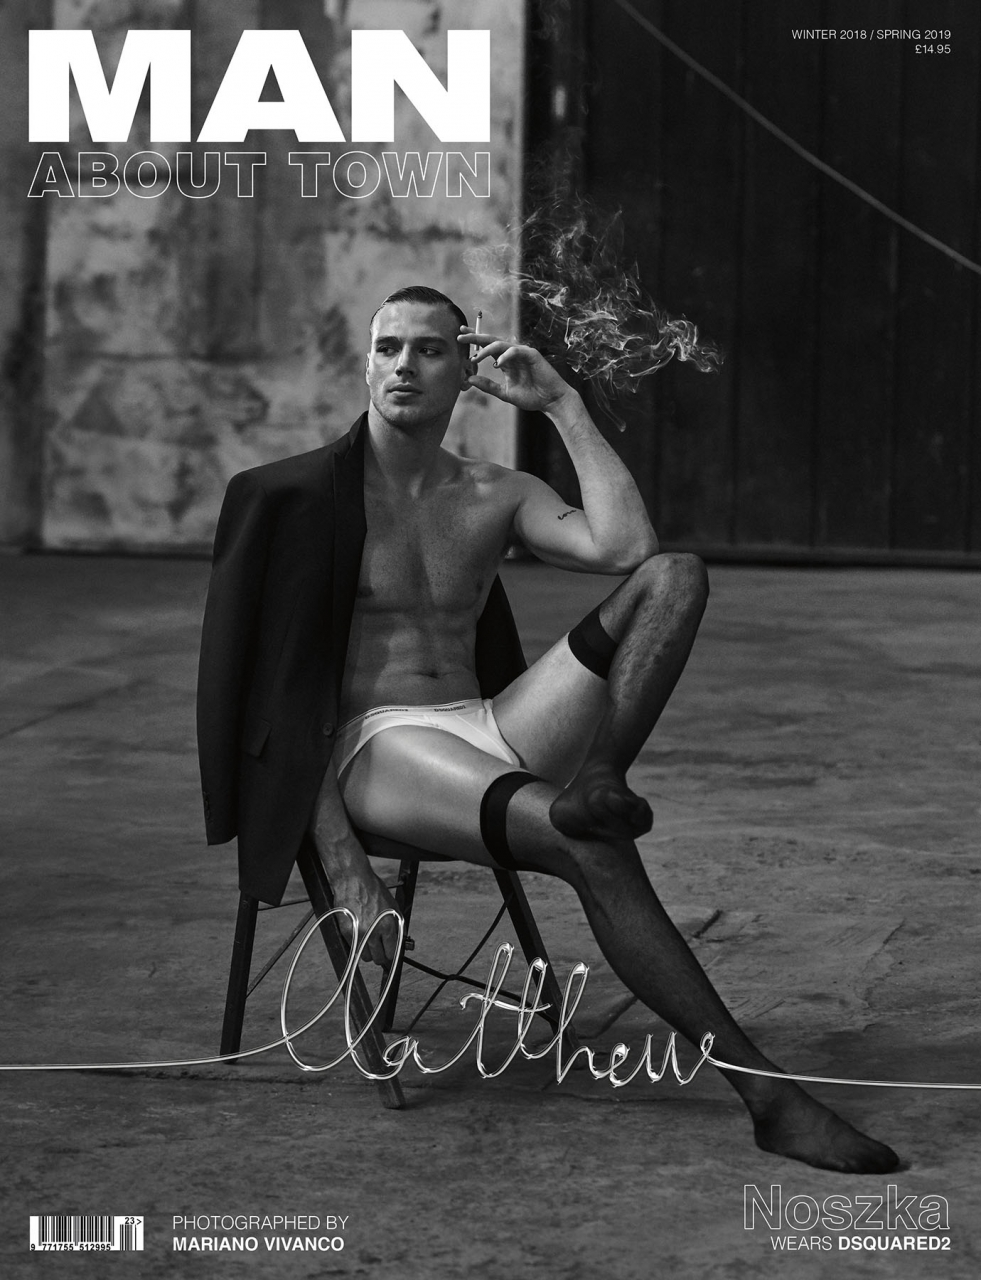 Me, Myself & I - Matthew Noszka by Mariano Vivanco for Man About Town